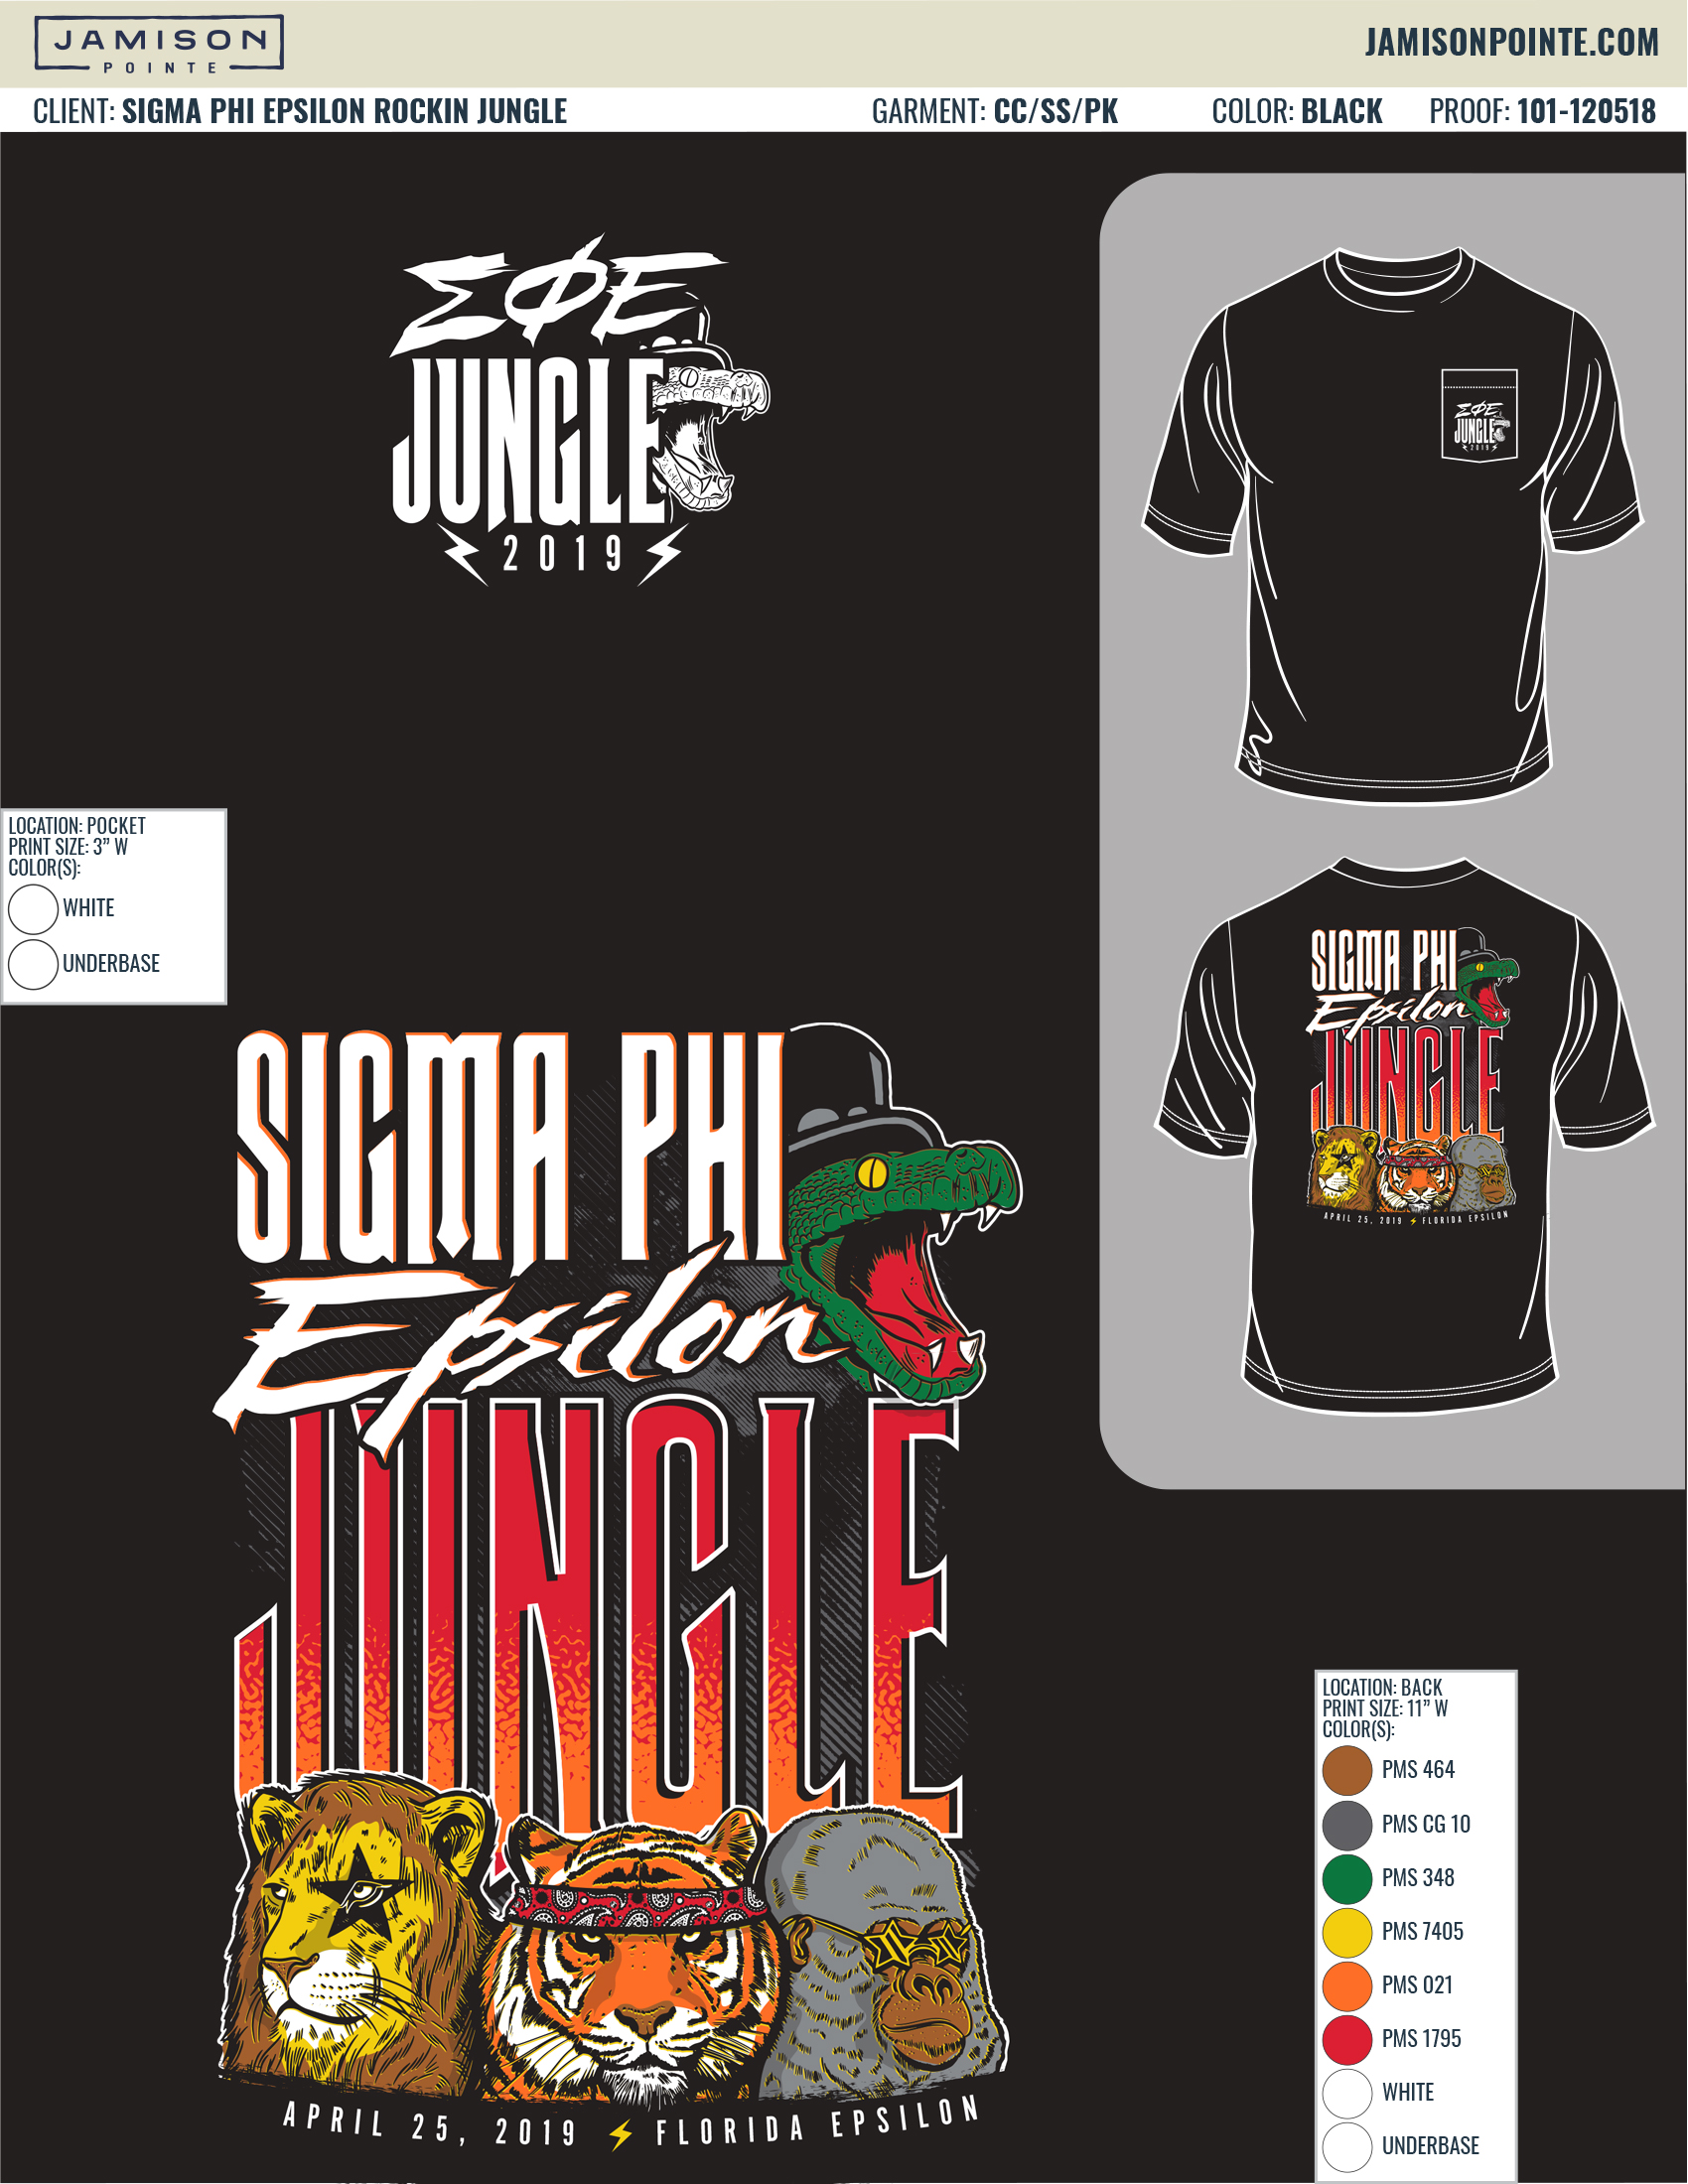 101-120518 Sigma Phi Epsilon Rockin Jungle.jpg